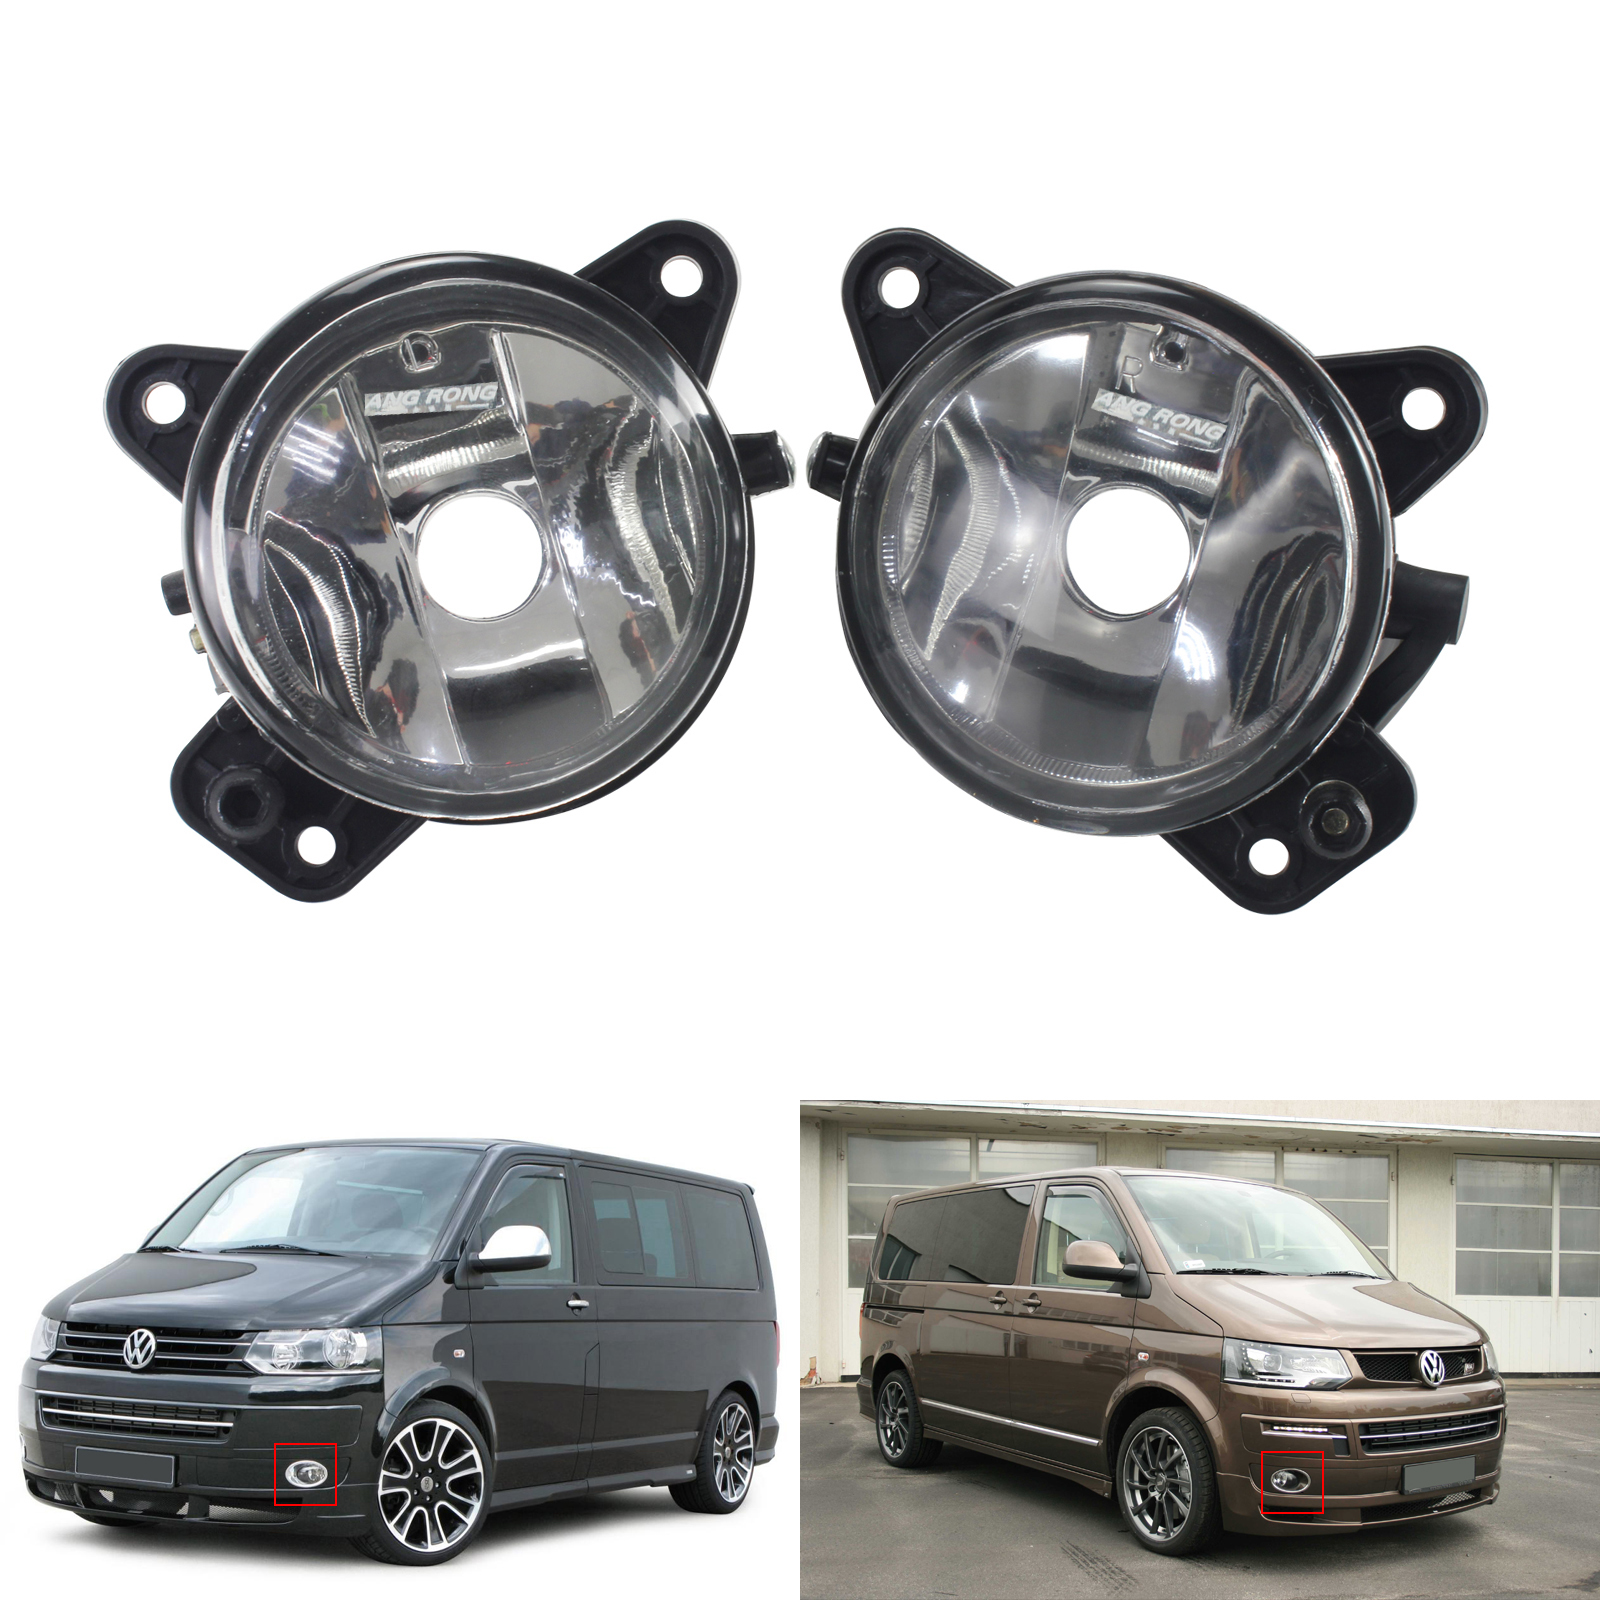 ANGRONG 2x Front Fog Light lamps OEM Replacement Left & Right No Bulb For <font><b>VW</b></font> Transporter <font><b>T5</b></font> image